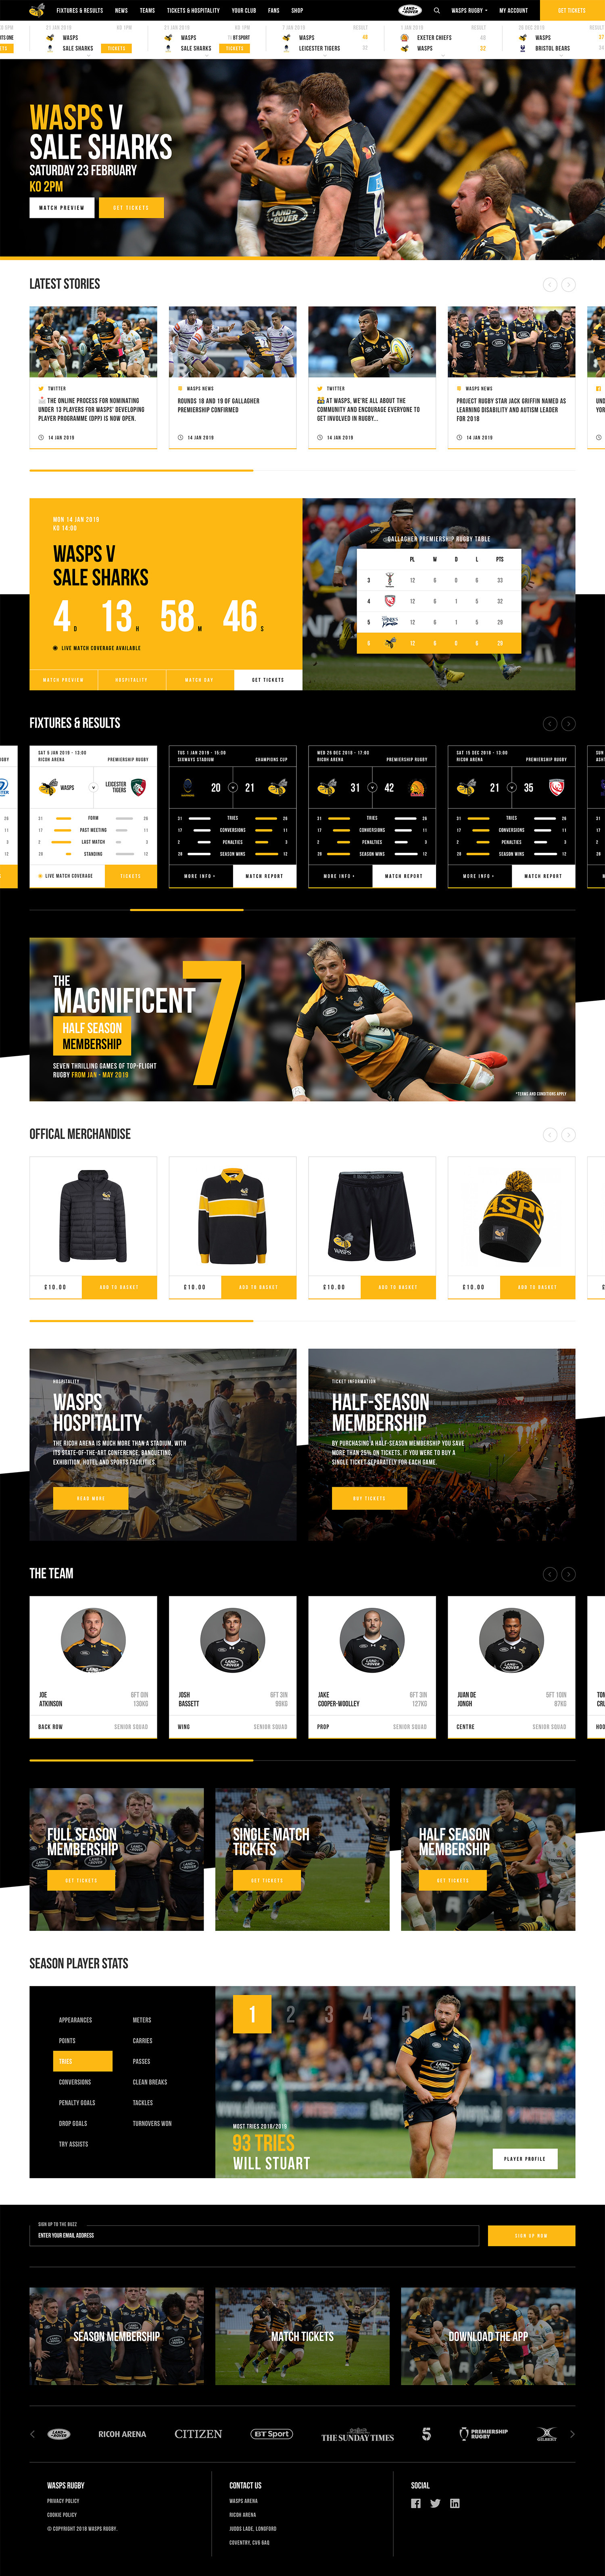 Wasps Rugby Asset